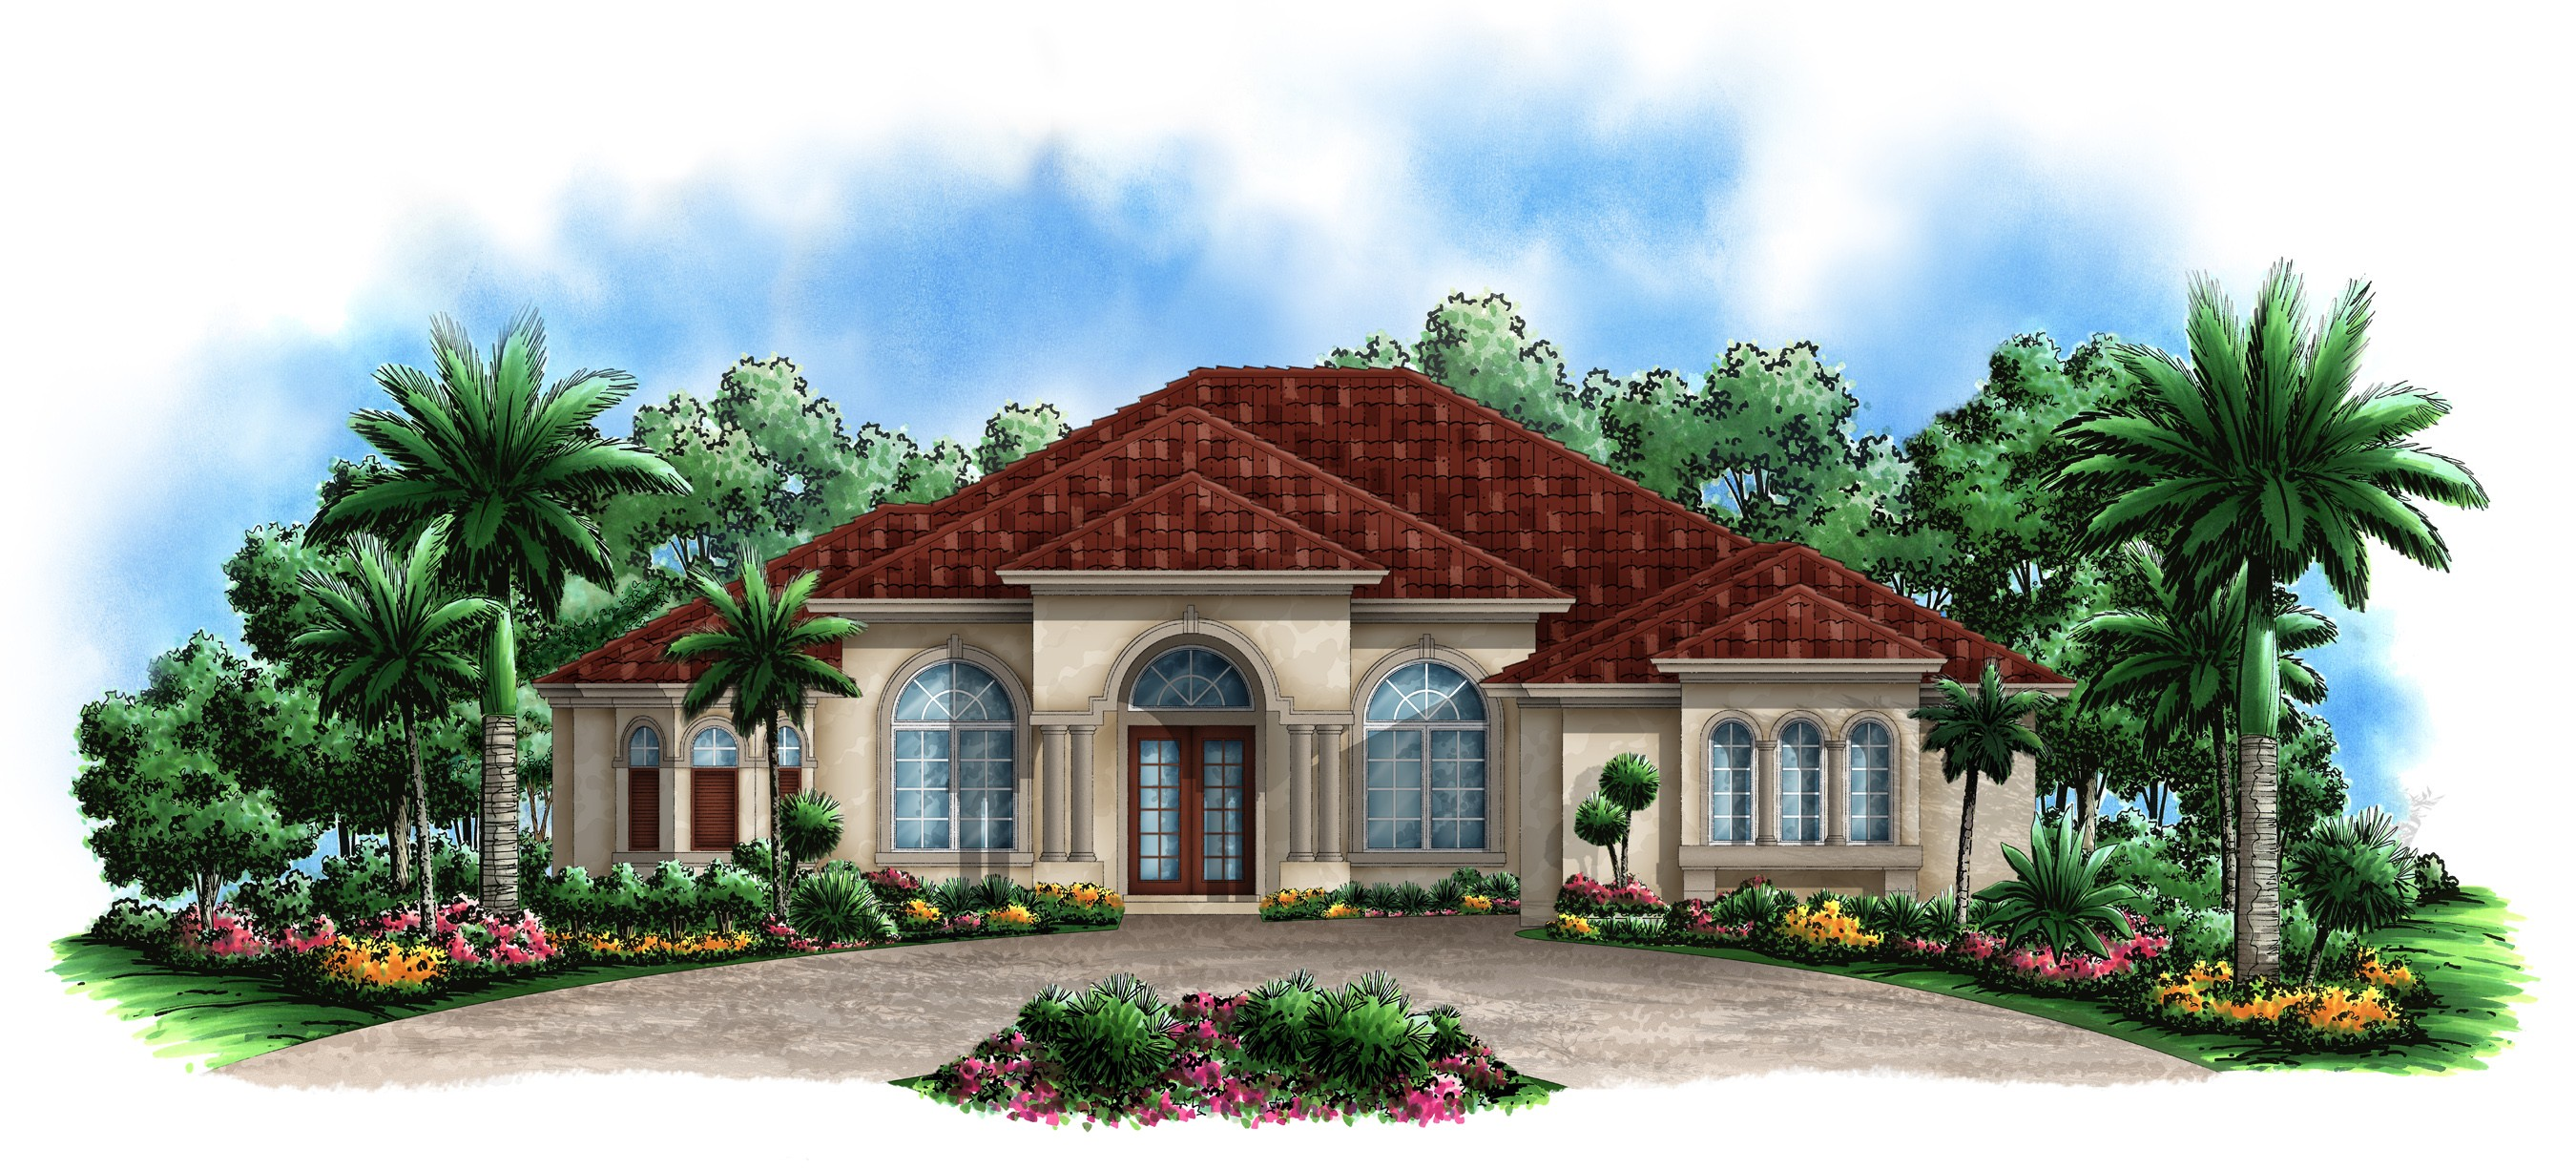 Florida Mediterranean Style House Plans